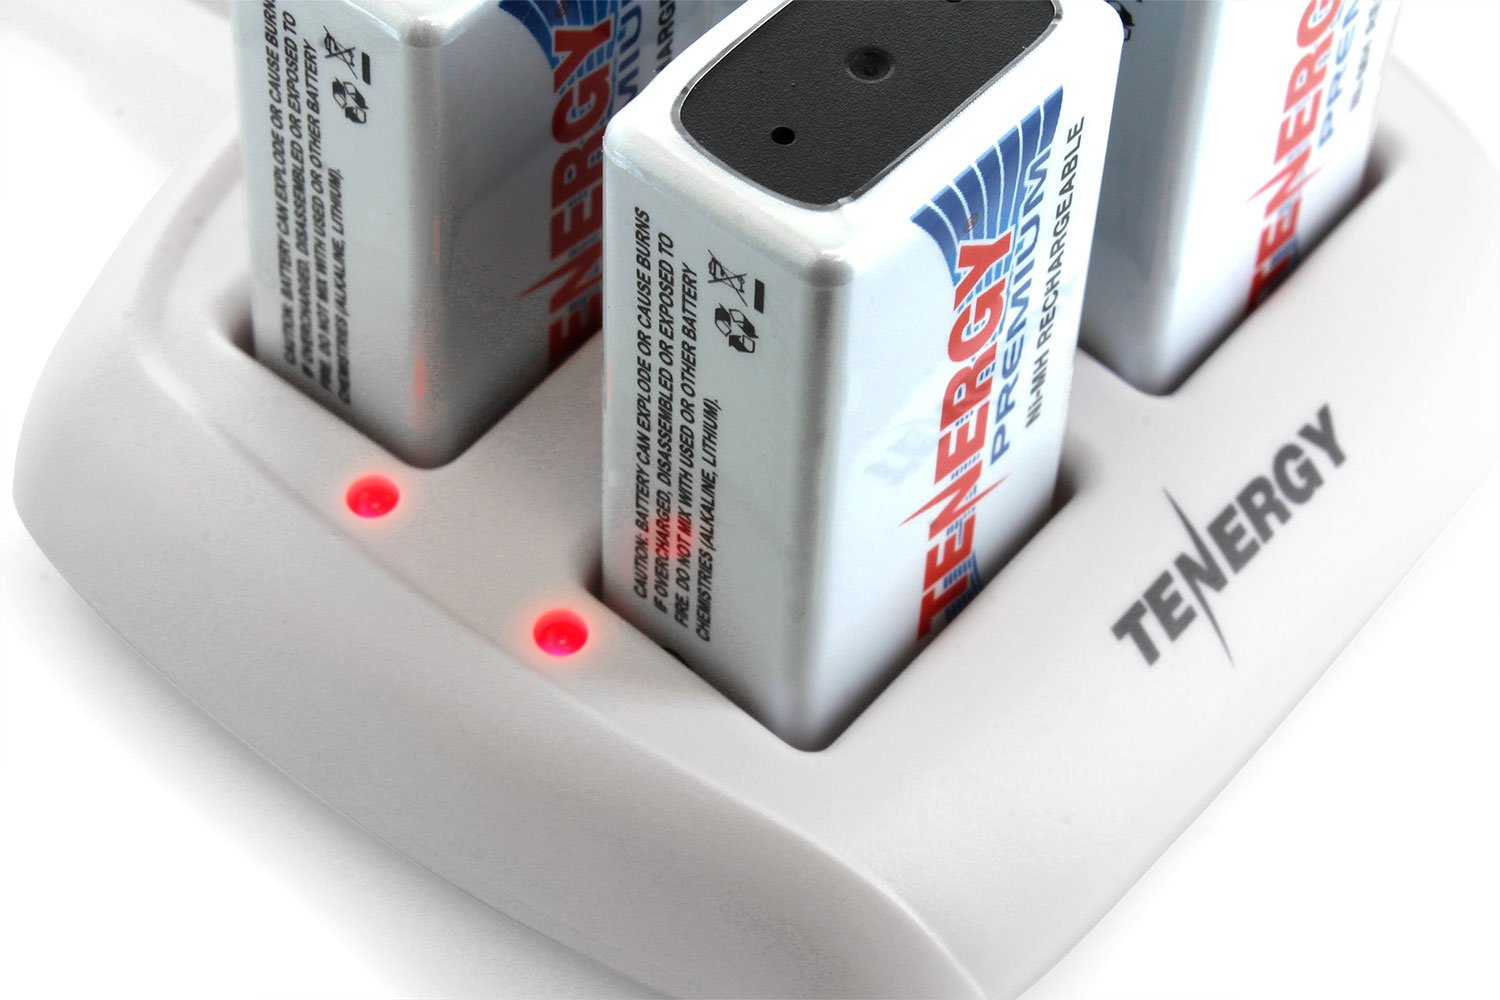 Tenergy Smart 9V 4 Bay Charger TN136 by Tenergy (Image #6)